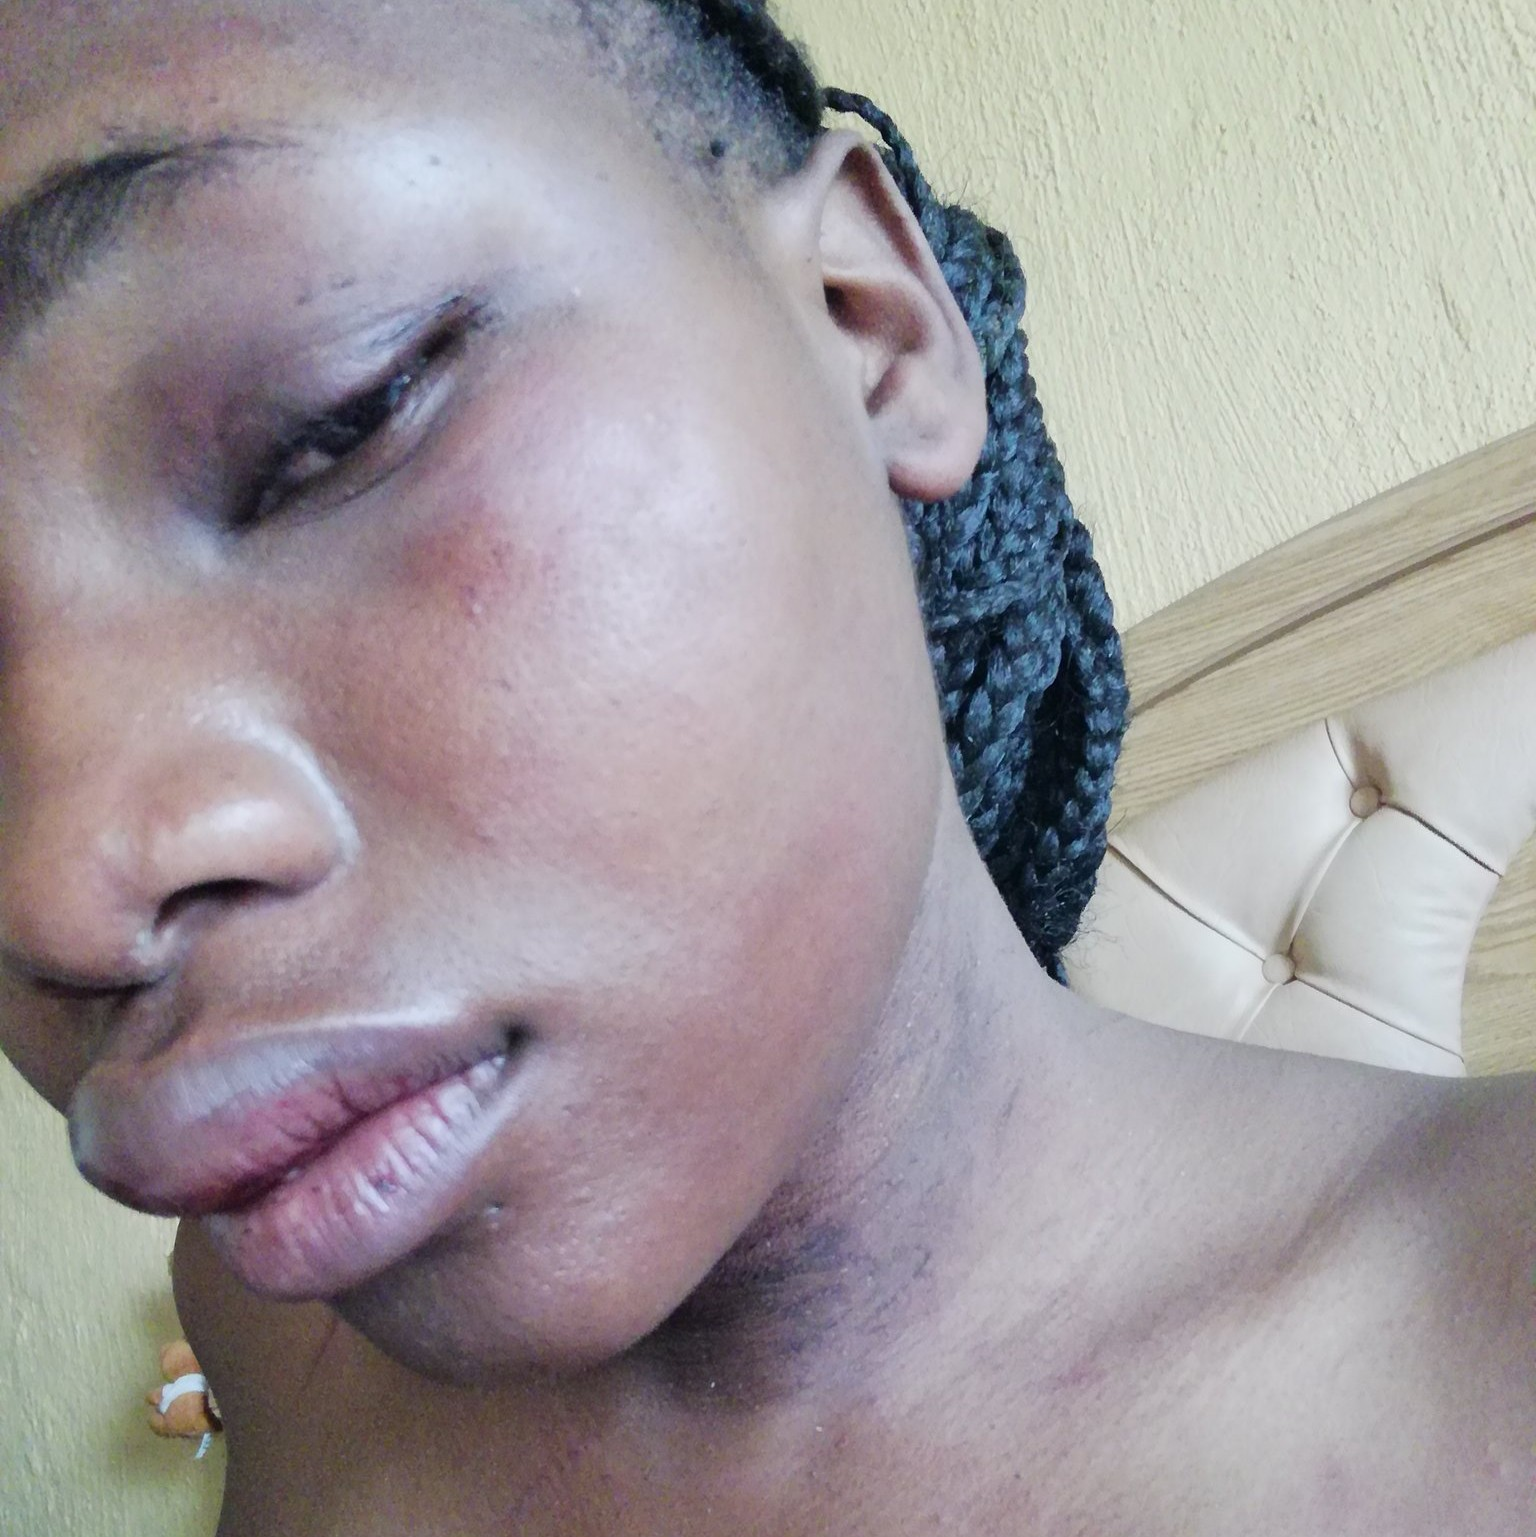 Happiness Nomathenda a South African girl raped by her neighbour